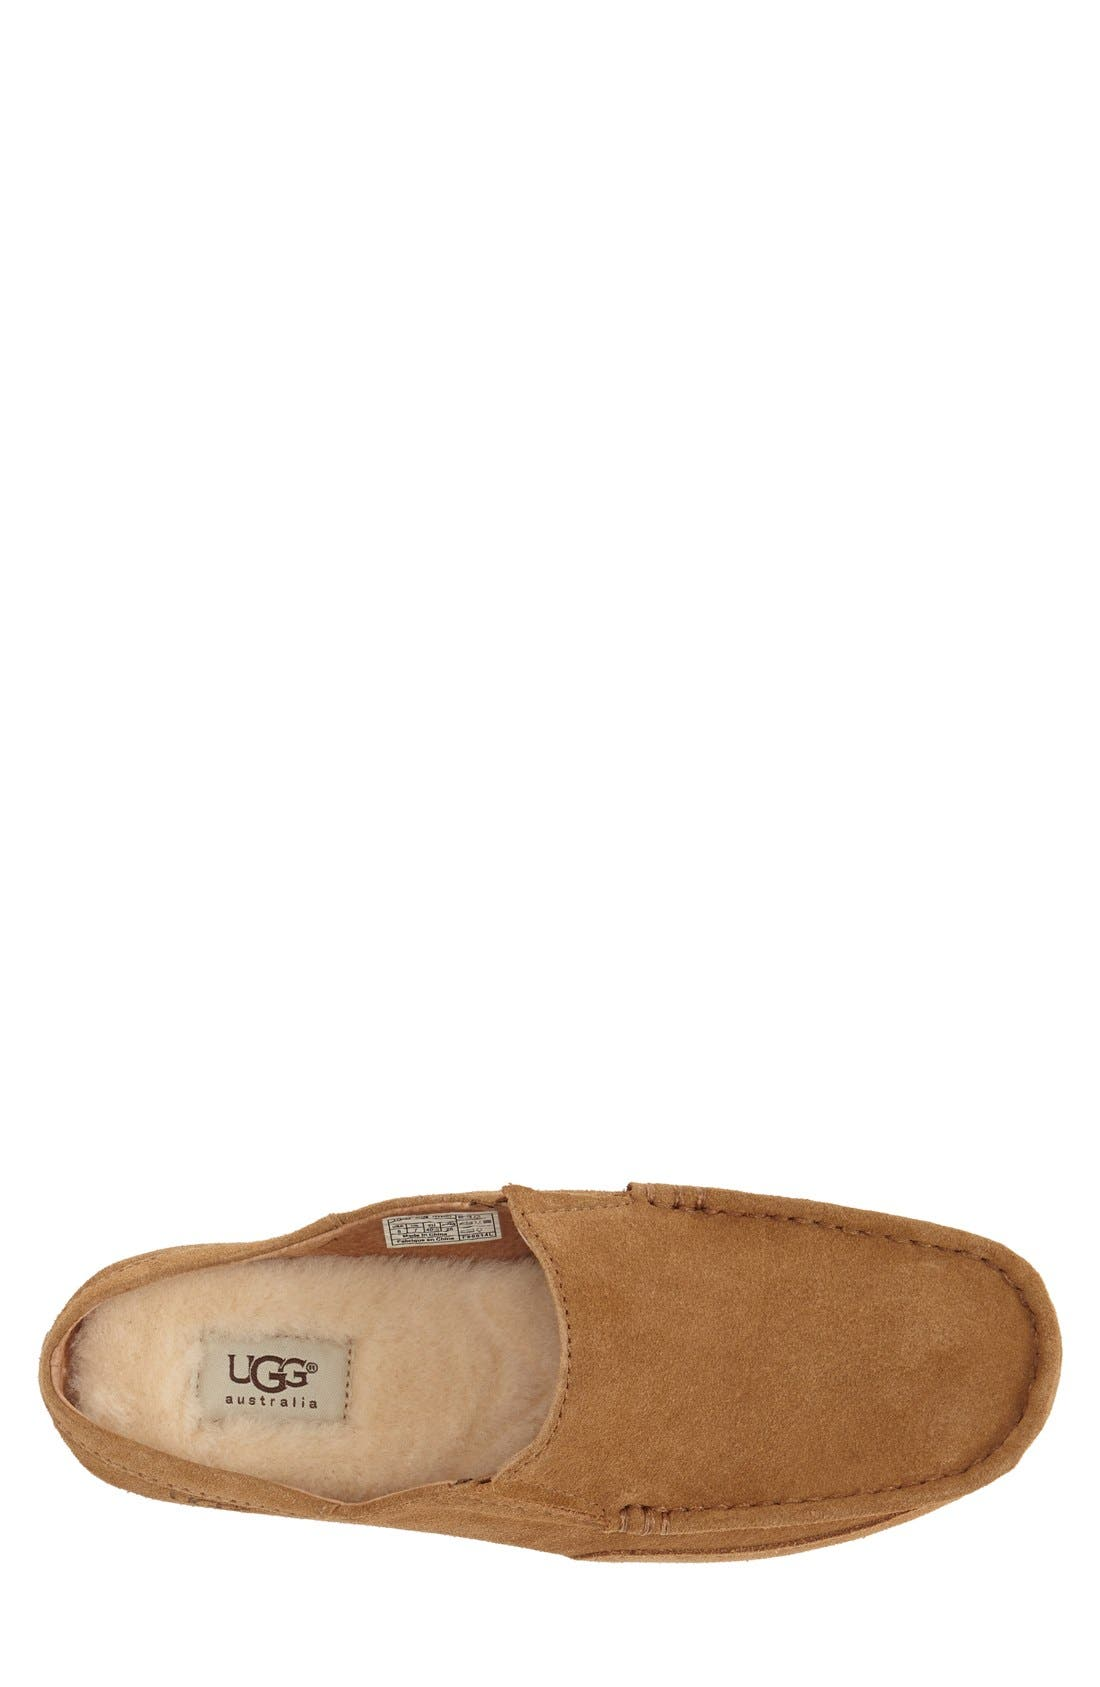 Alternate Image 3  - UGG® Alamar Twinsole® Slip-On (Men)